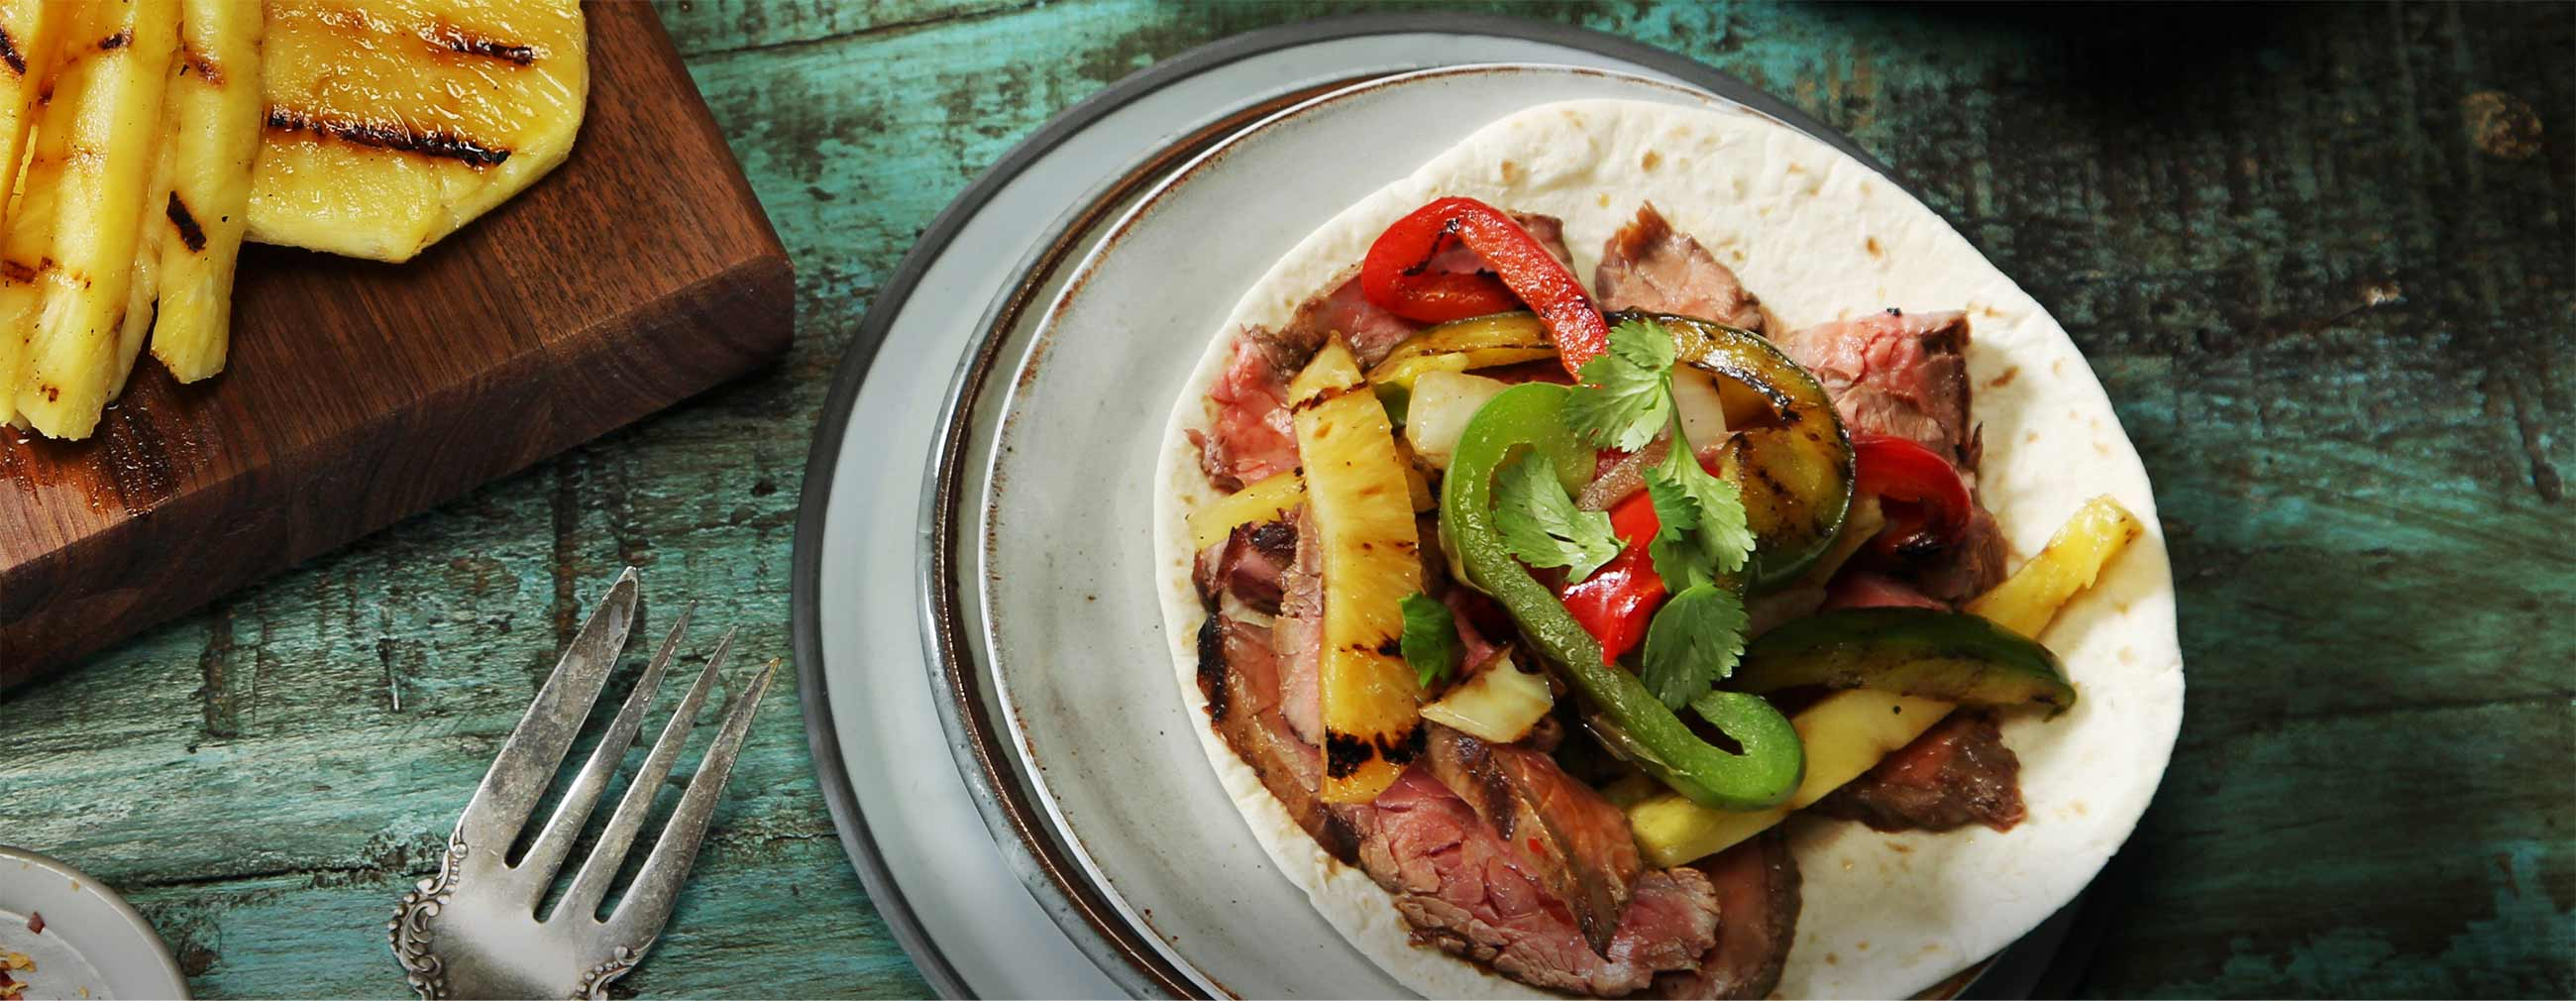 Grilled Steak and Pineapple Wraps